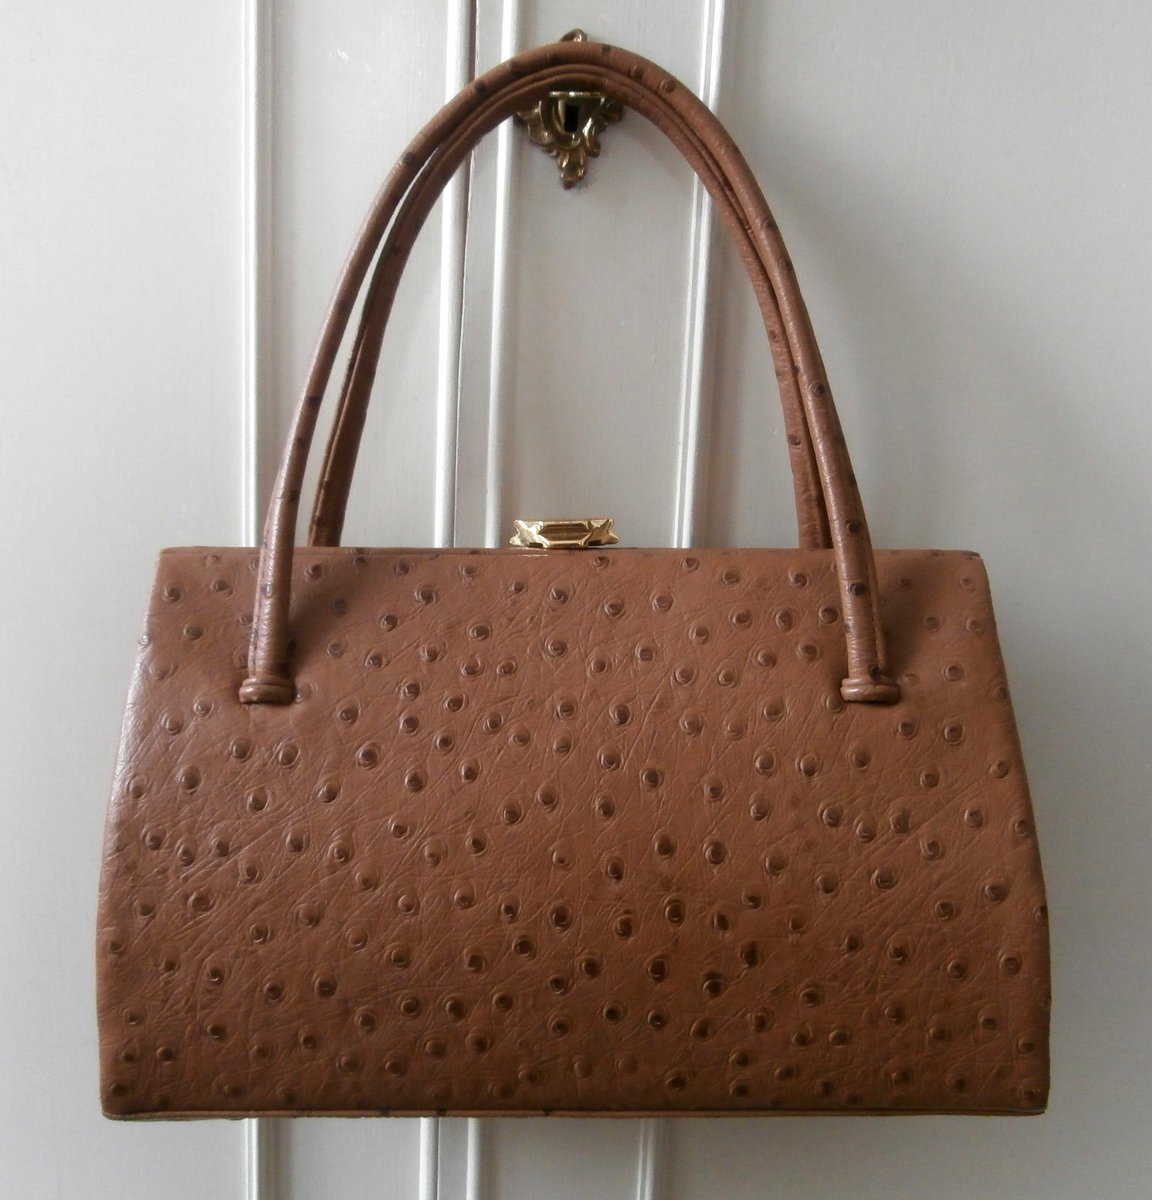 Ostrich Leather In Rich Brown Ebay Co Uk Itm Vintage 1950s Suede Lined Waldybag Kelly Ladylike Hand Bag 311442009334